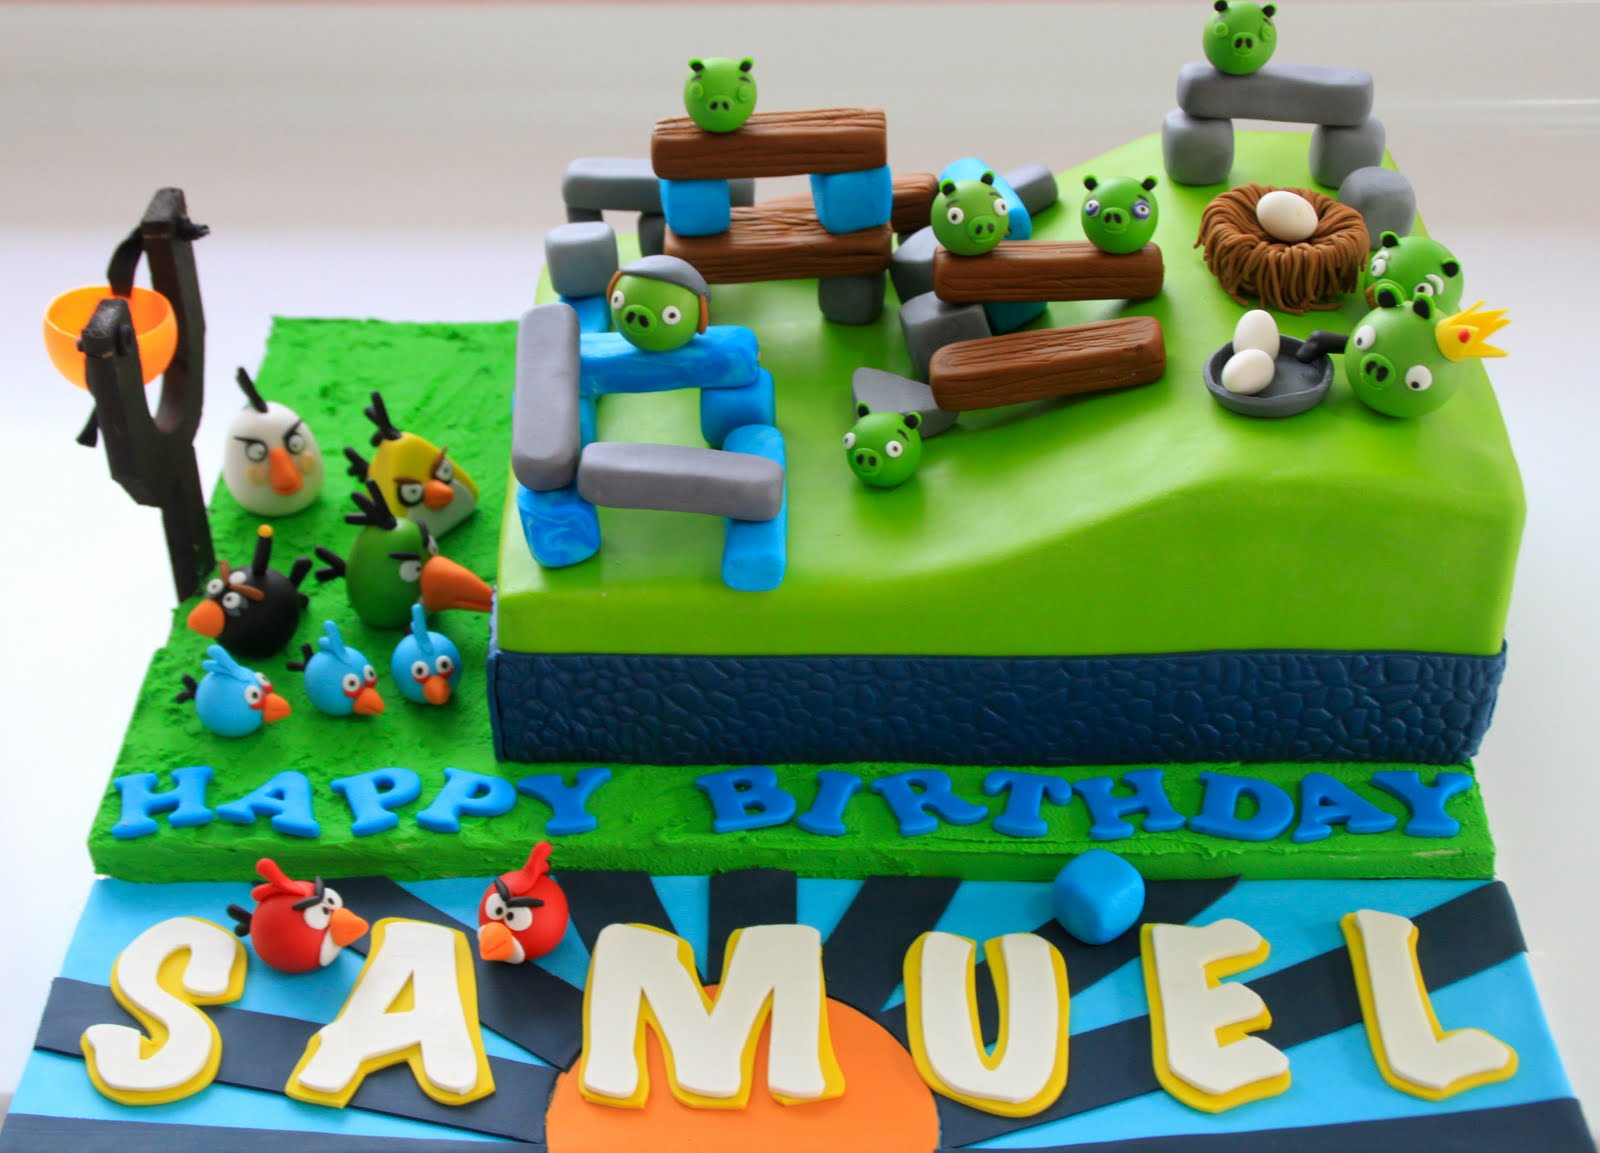 Celebrate with Cake!: Playable Angry Birds Cake